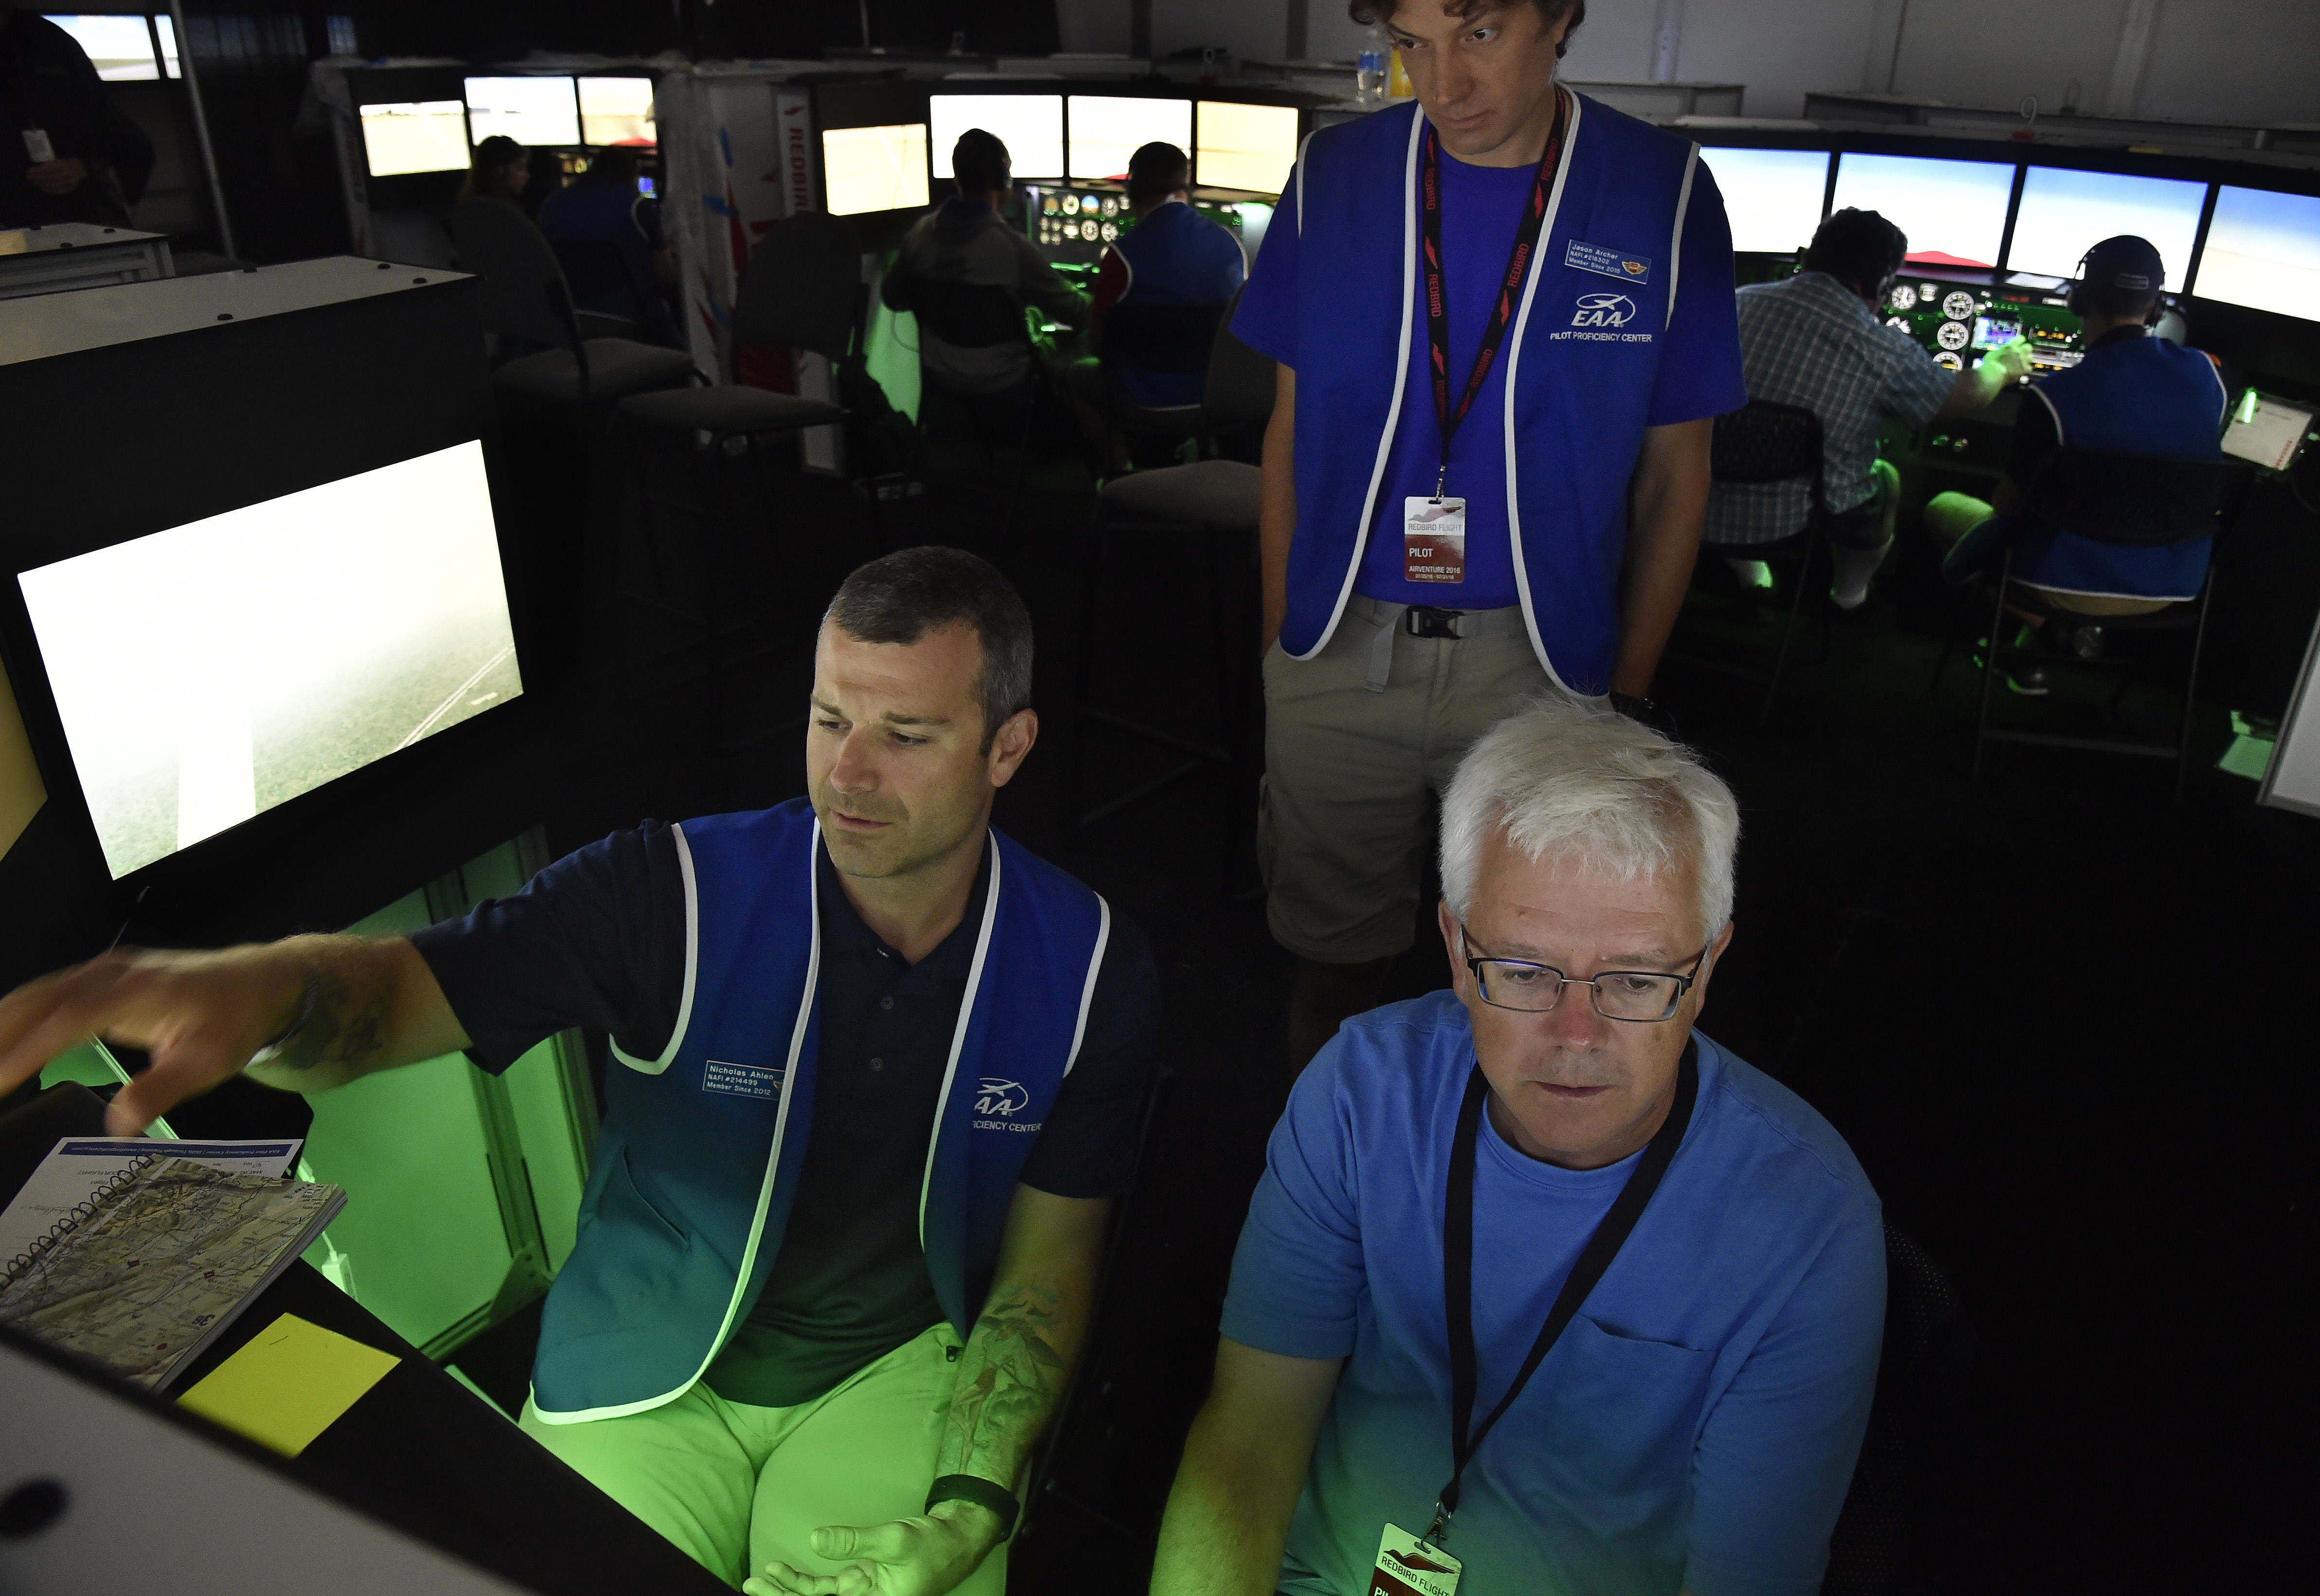 Flight instructor Jason Archer supervises pilots and other instructors at EAA AirVenture's popular Pilot Proficiency Center. Photo by David Tulis.